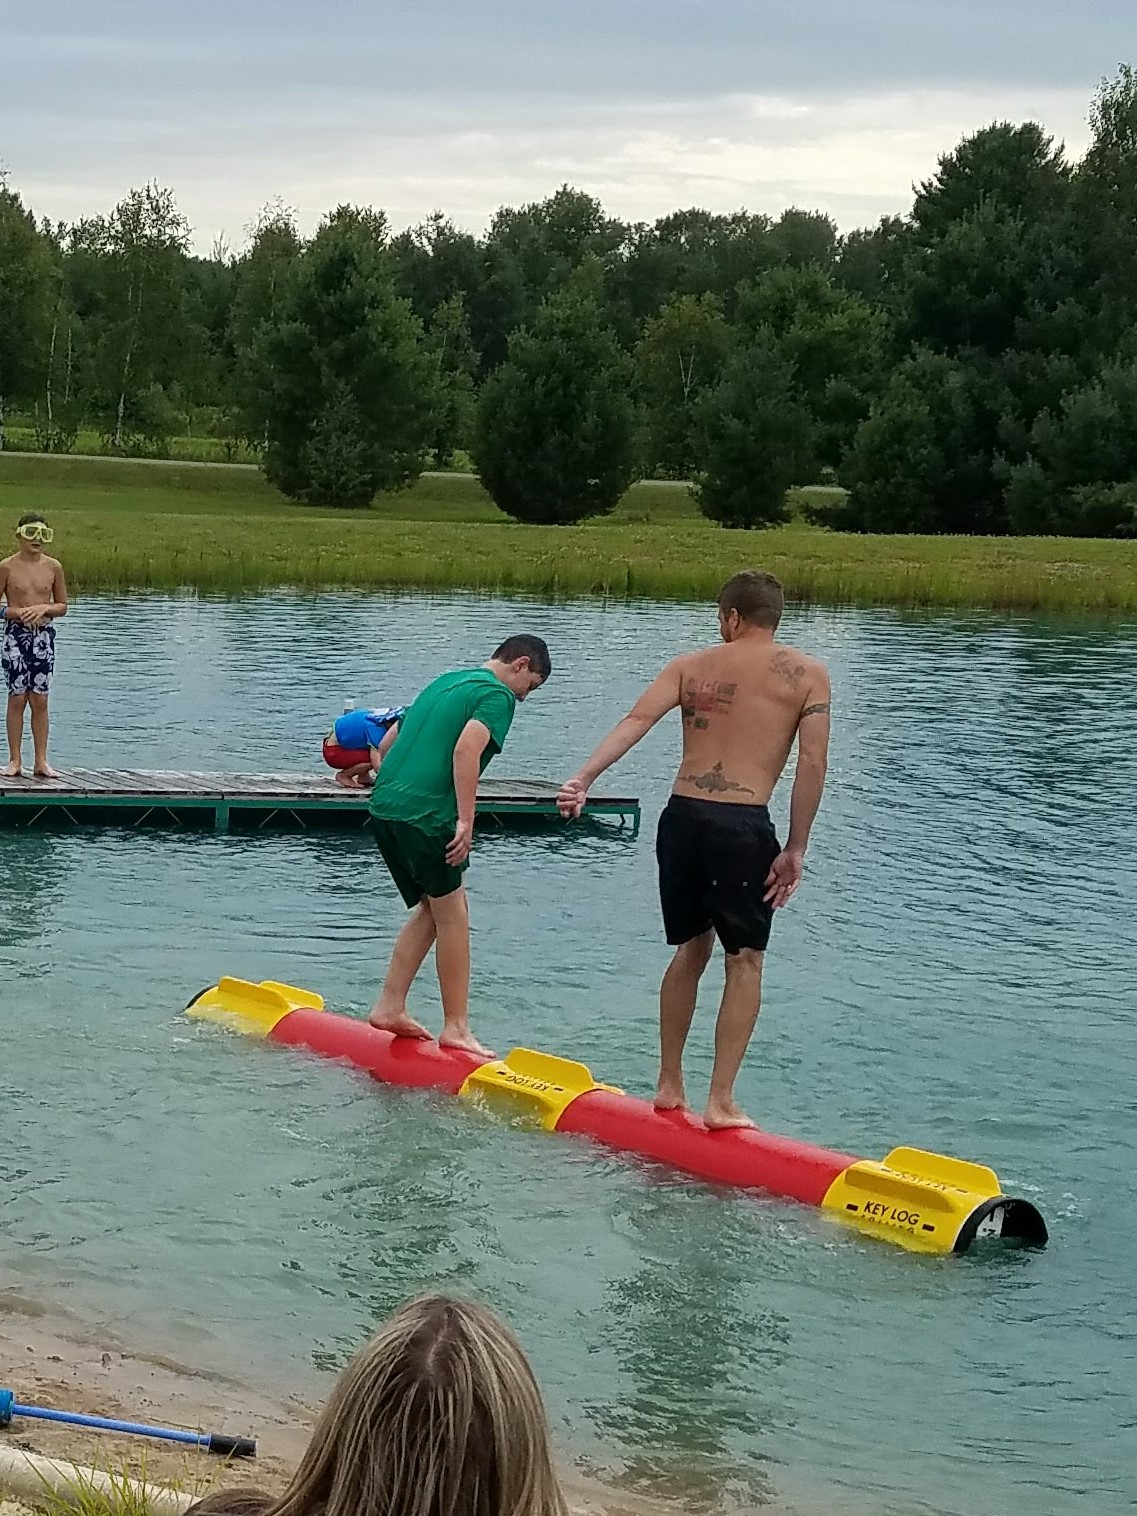 Challenge a friend to a Key Log contest, jump off the dock, slide down the slide or play in the sand at our swim pond.